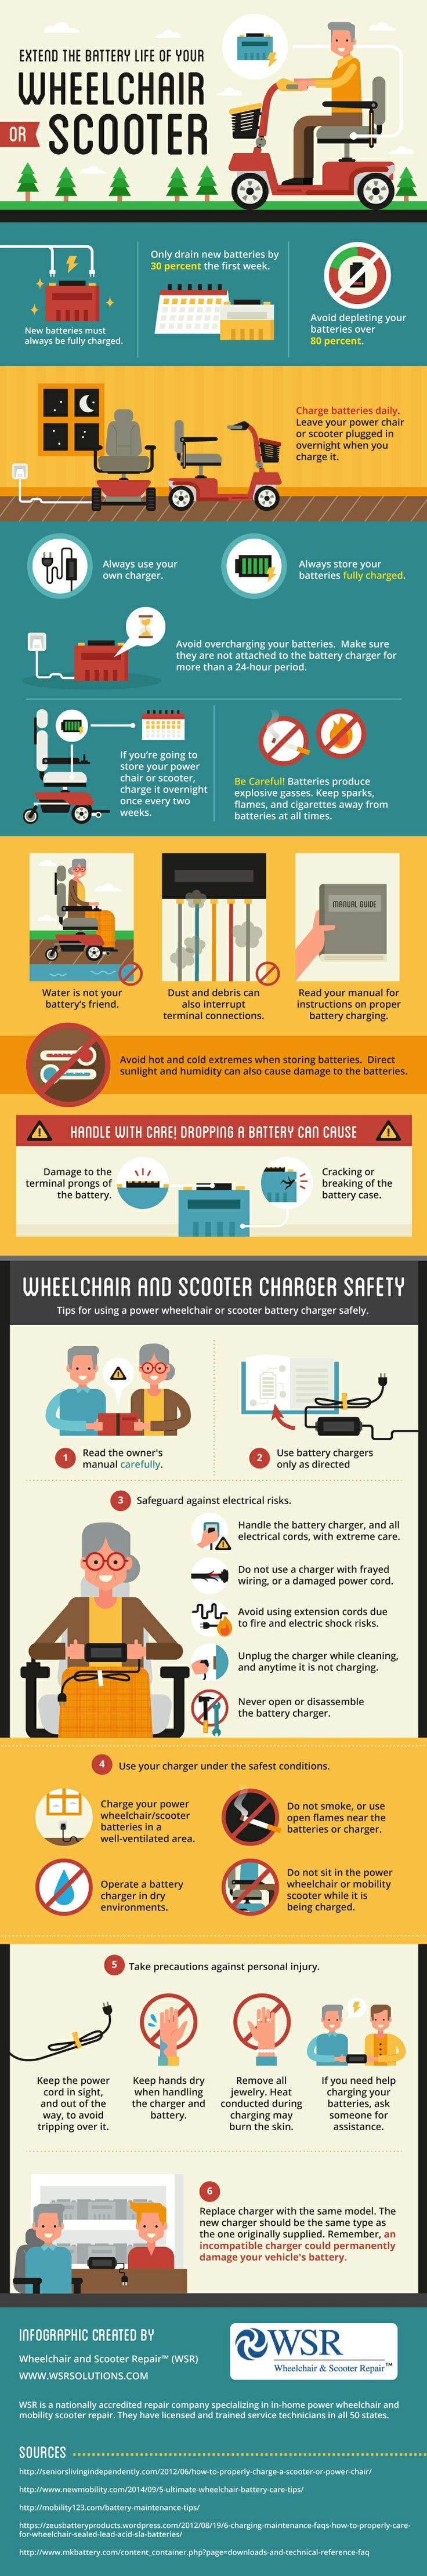 20 Ways to extend the battery life of your Mobility Scooter or Electric Wheelchair. With this infographic you will be able to save money on the long run by extending the battery life of your mobility or wheelchair. Read more about mobility scooters here: http://insidefirstaid.com/personal/the-best-electric-mobility-scooters-for-adults #mobility #electric #scooters #wheelchair #battery